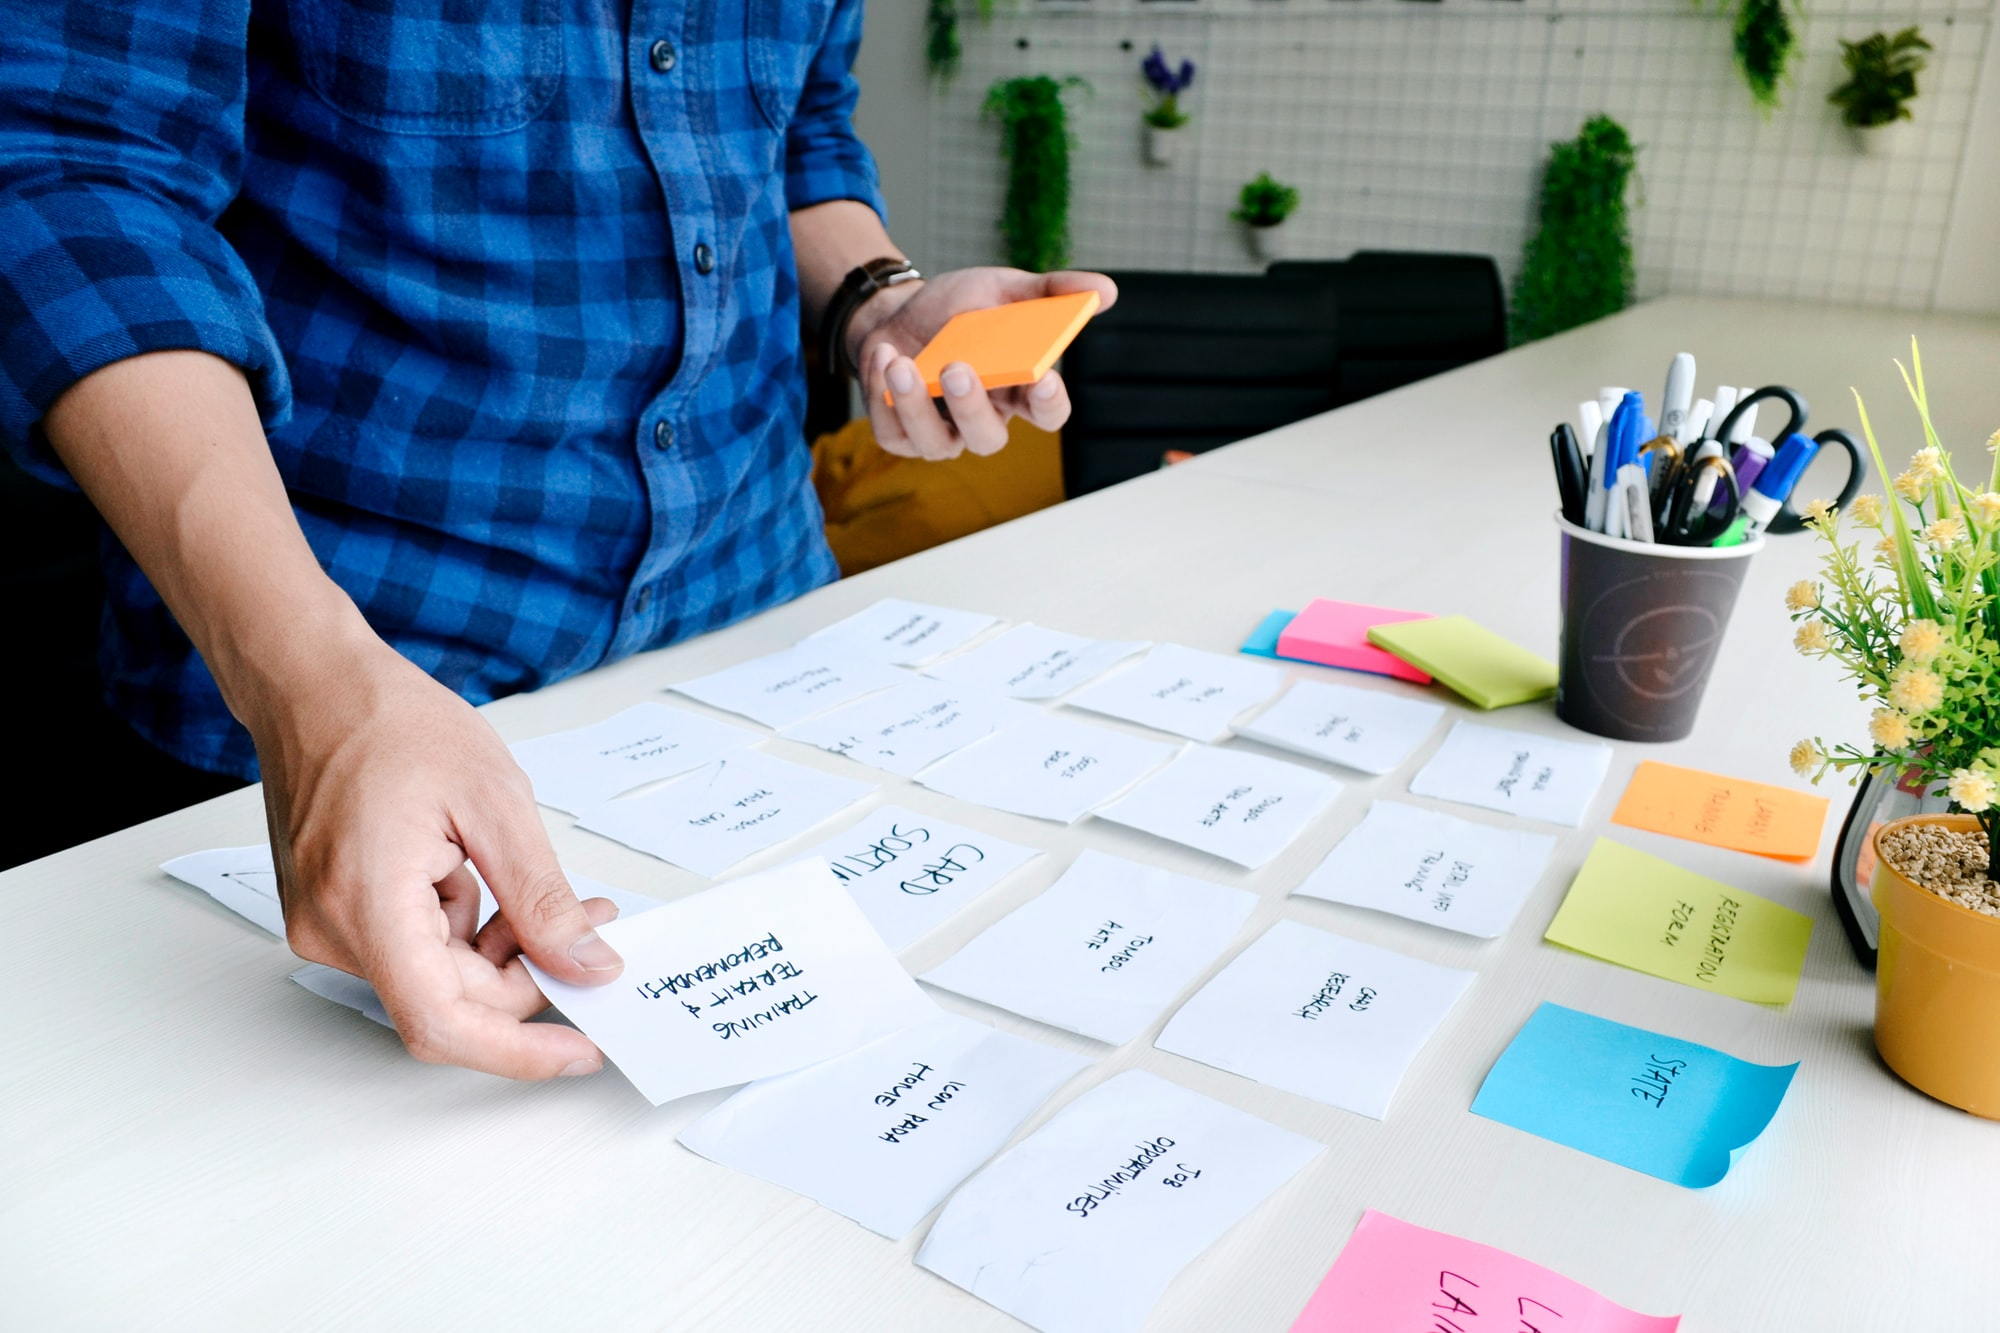 Card sorting is a UX research technique in which users organize topics into groups. Use it to create an Information Architecture that suits your users' expectations. In cart sorting, participants group individual labels written on notecards according to criteria that make sense to them. Card sorting is a highly useful technique in information architecture; it is used to understand how users think about your content. It can help you organize content so that it suits your users' mental models, rather than the point of view of your company.